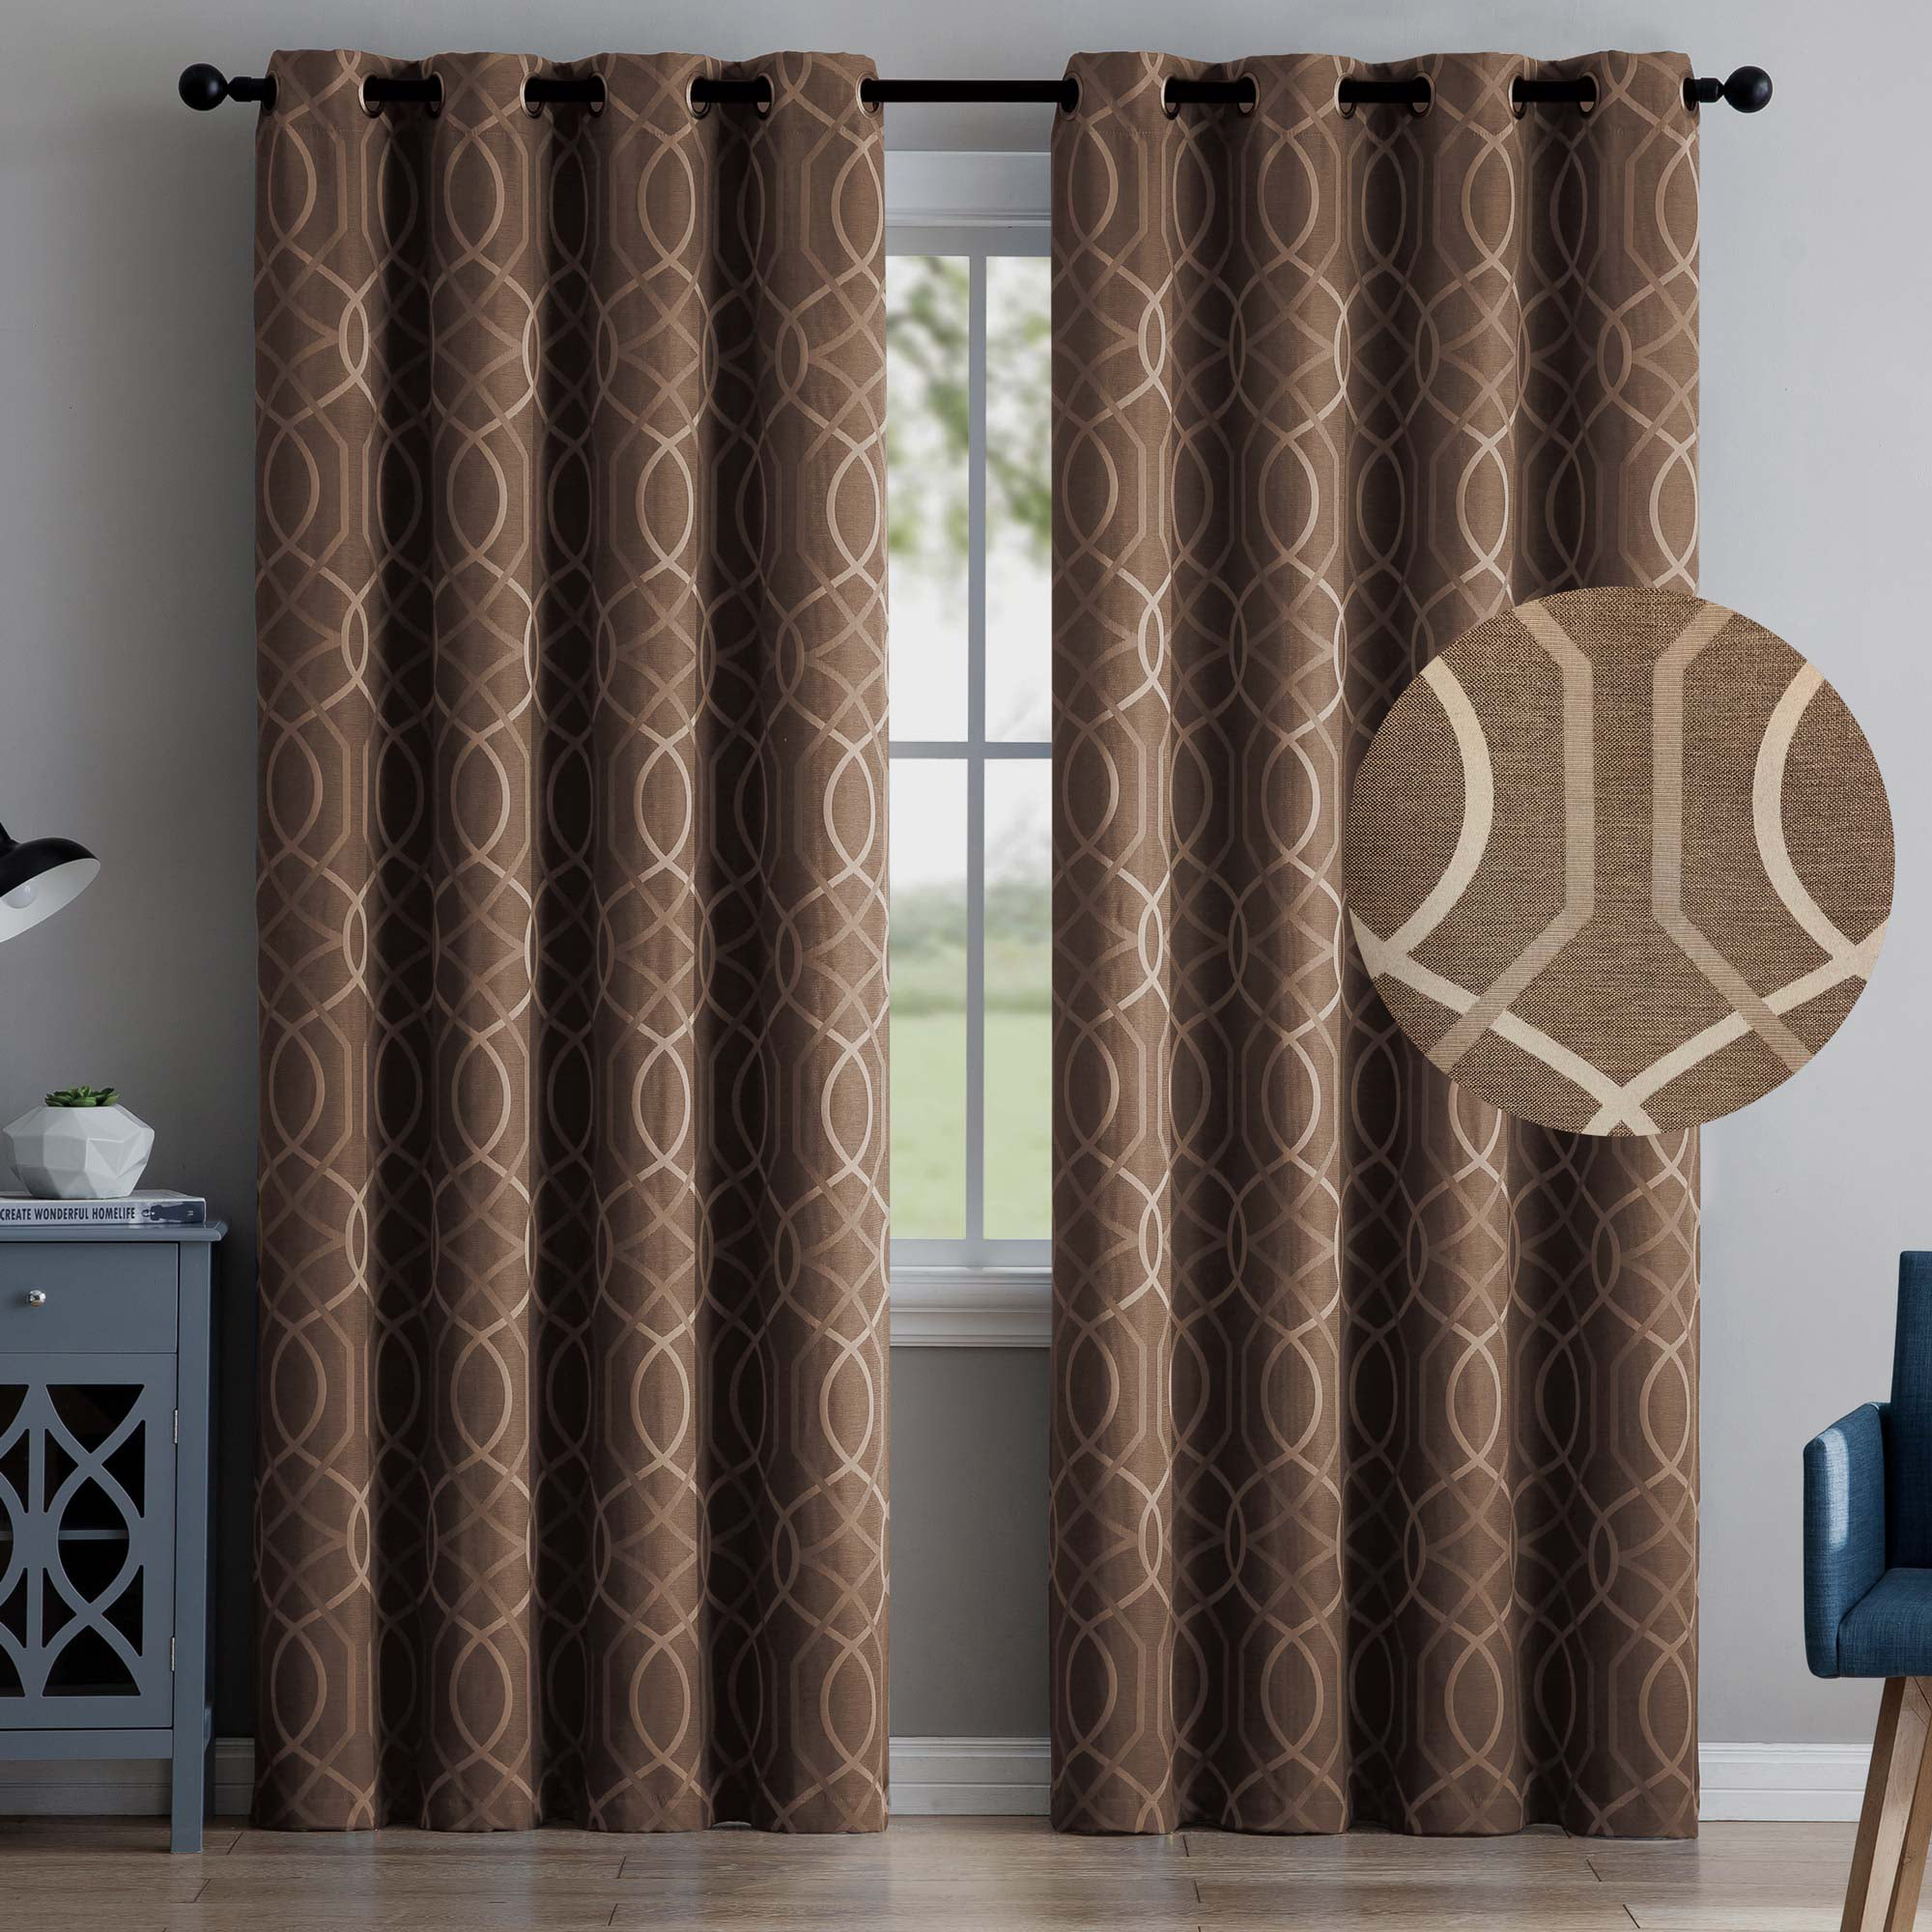 "2 Blackout Room Darkening Window Curtains 96"" Length Brown Embossed Trellis Grommet Panel Pair Drapes by"